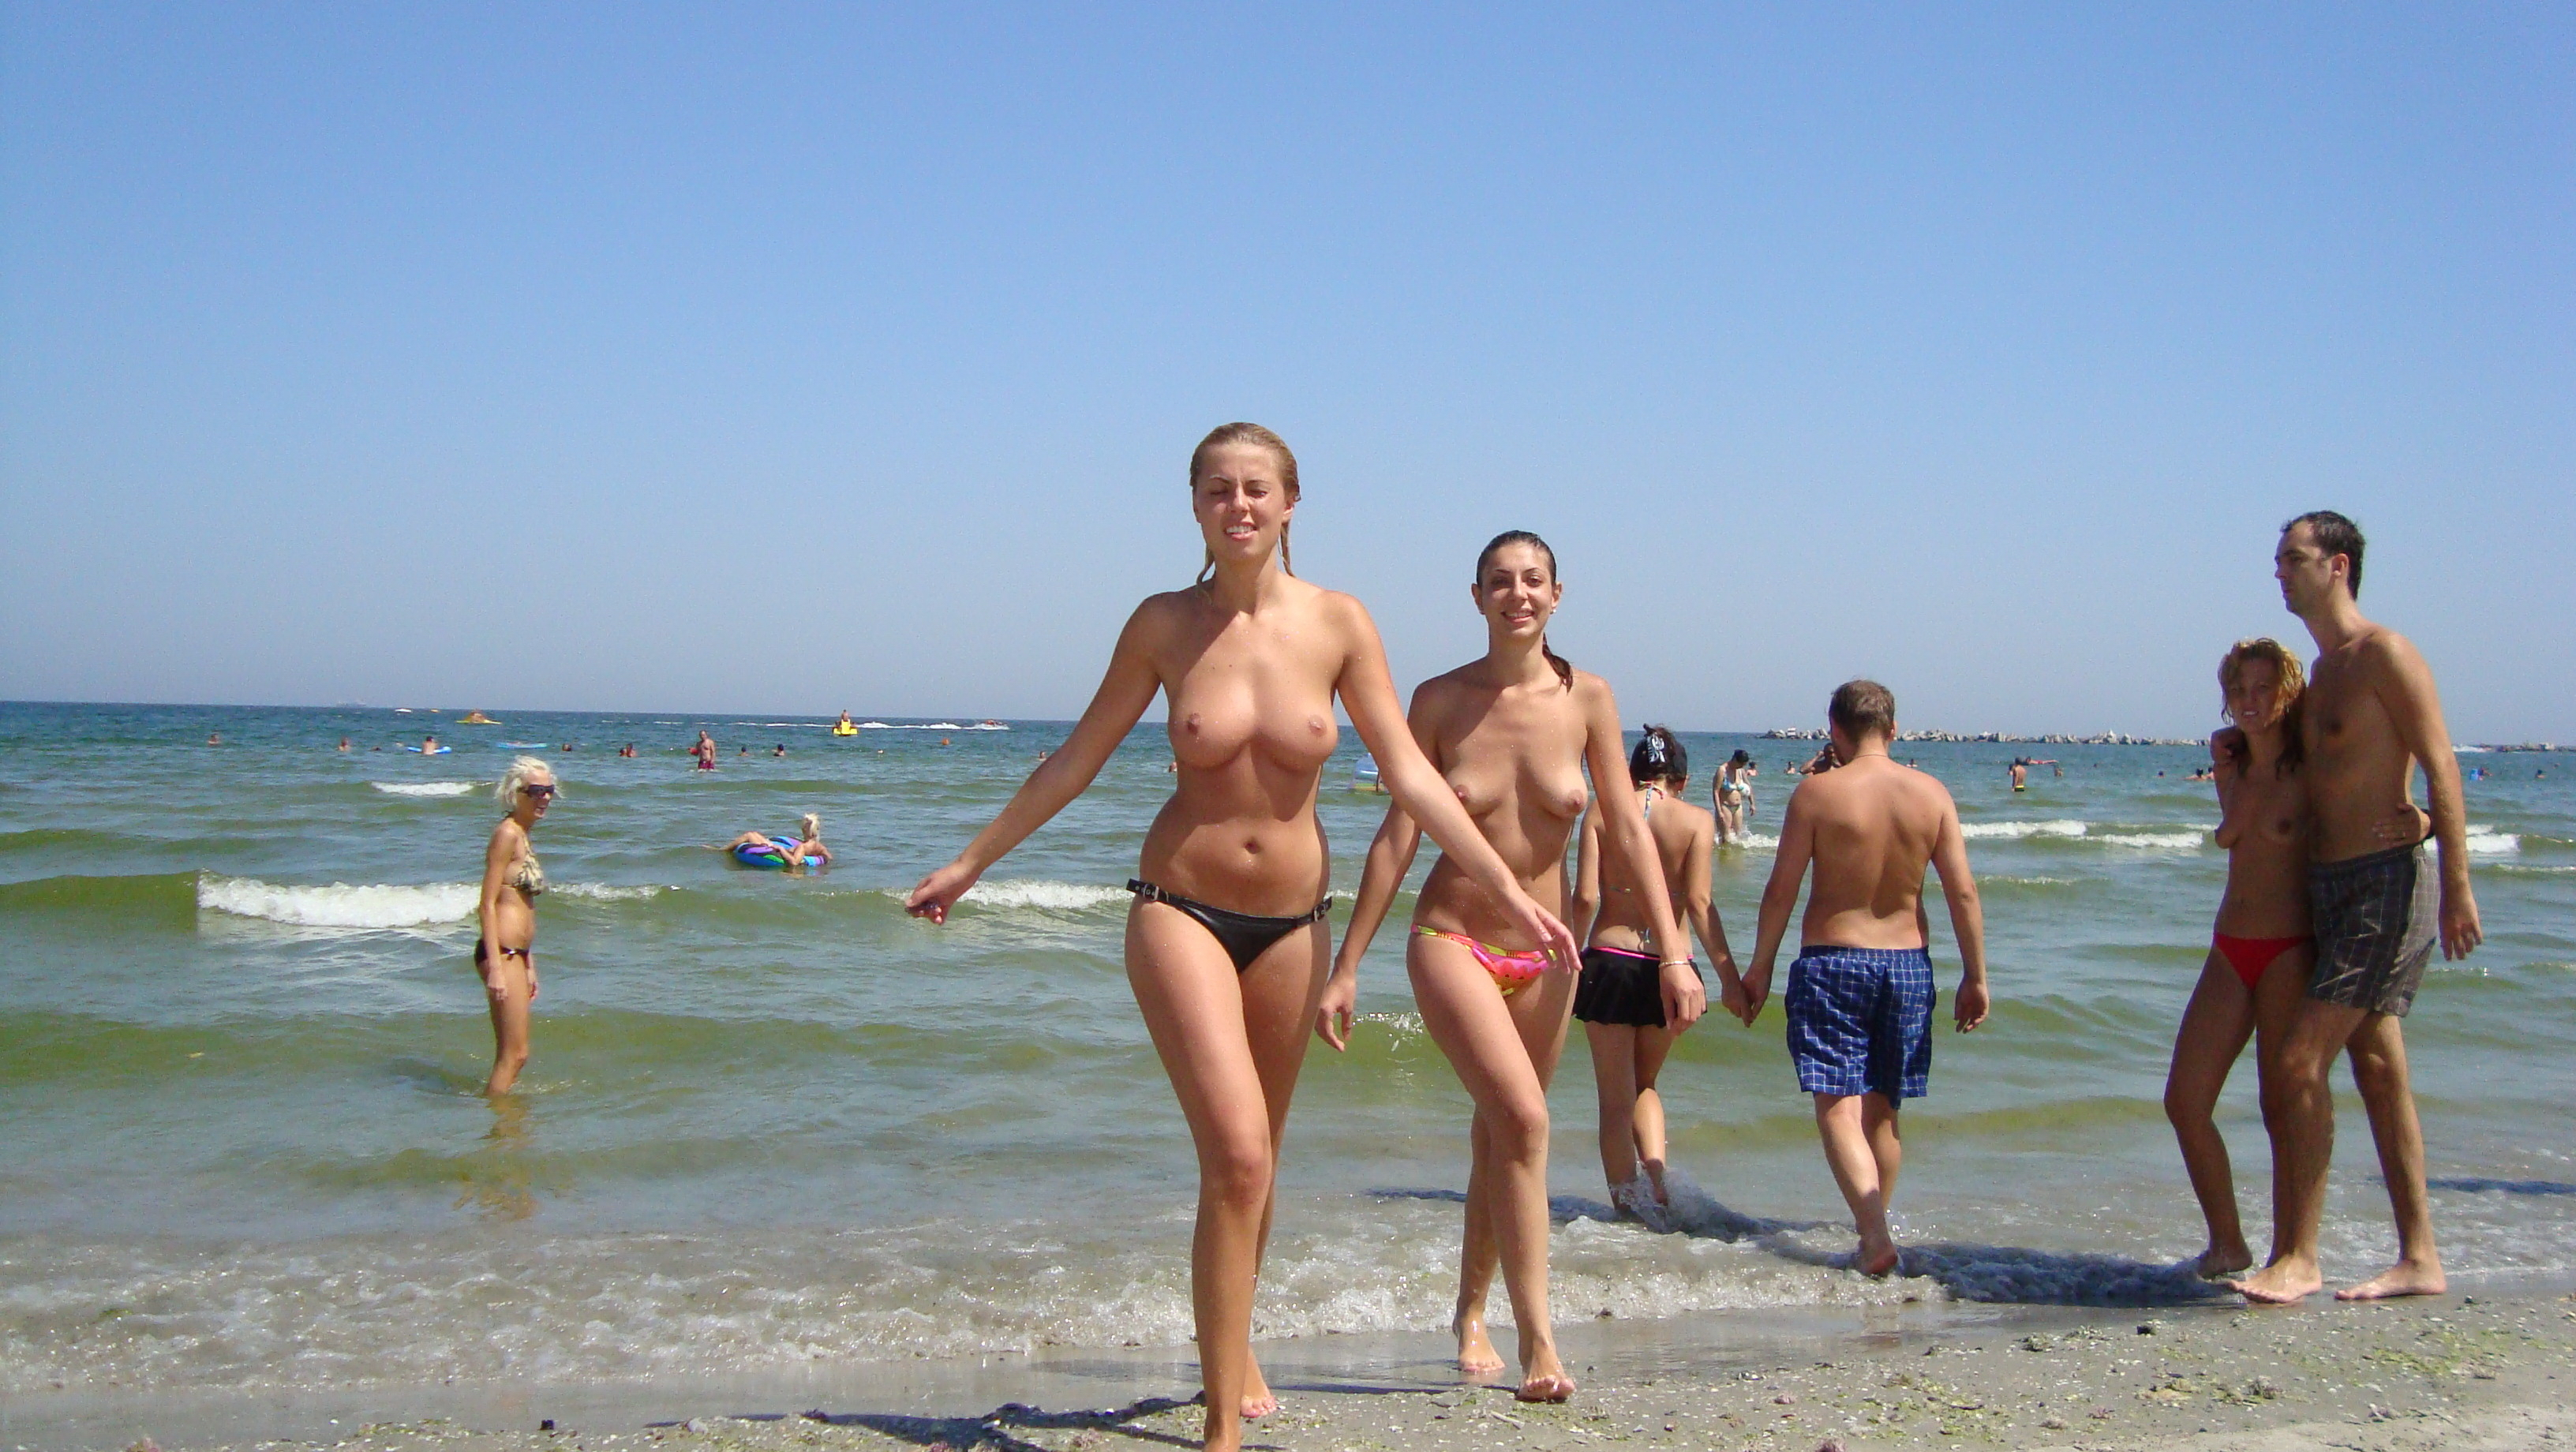 nude nudist beach girls